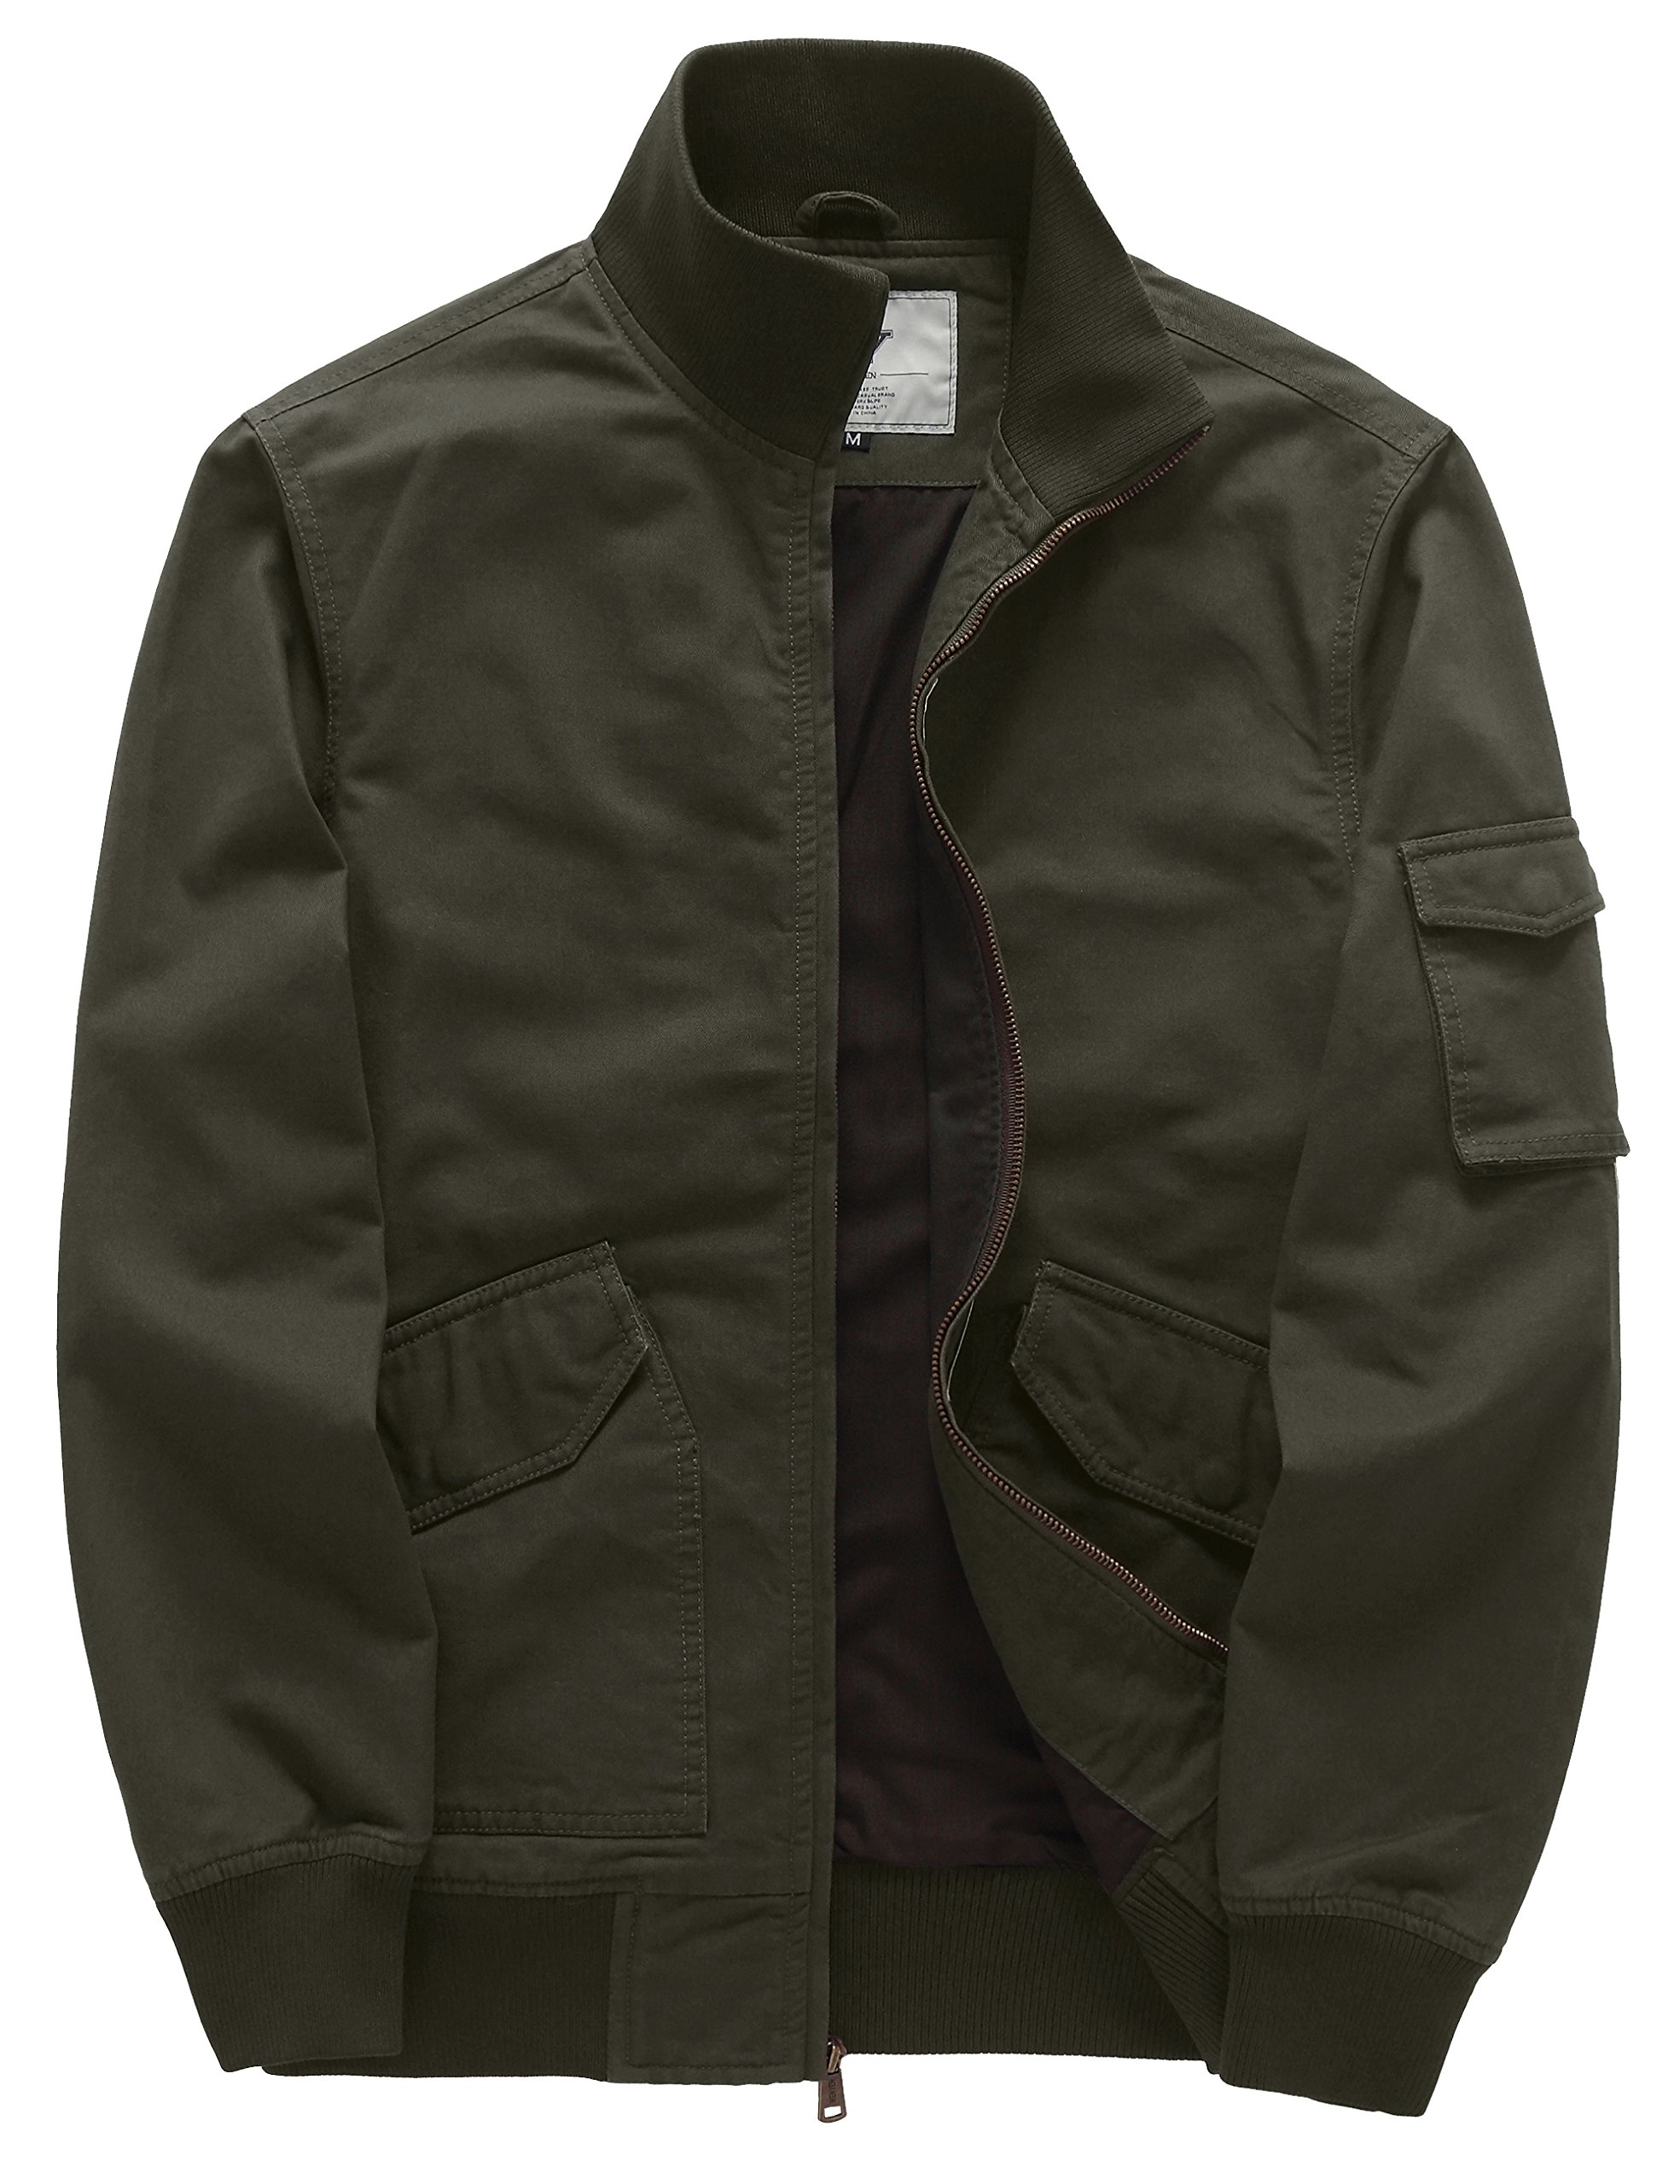 WenVen Men's Cotton Light Weight Work Bomber Flight Windbreaker(Army Green,Medium)